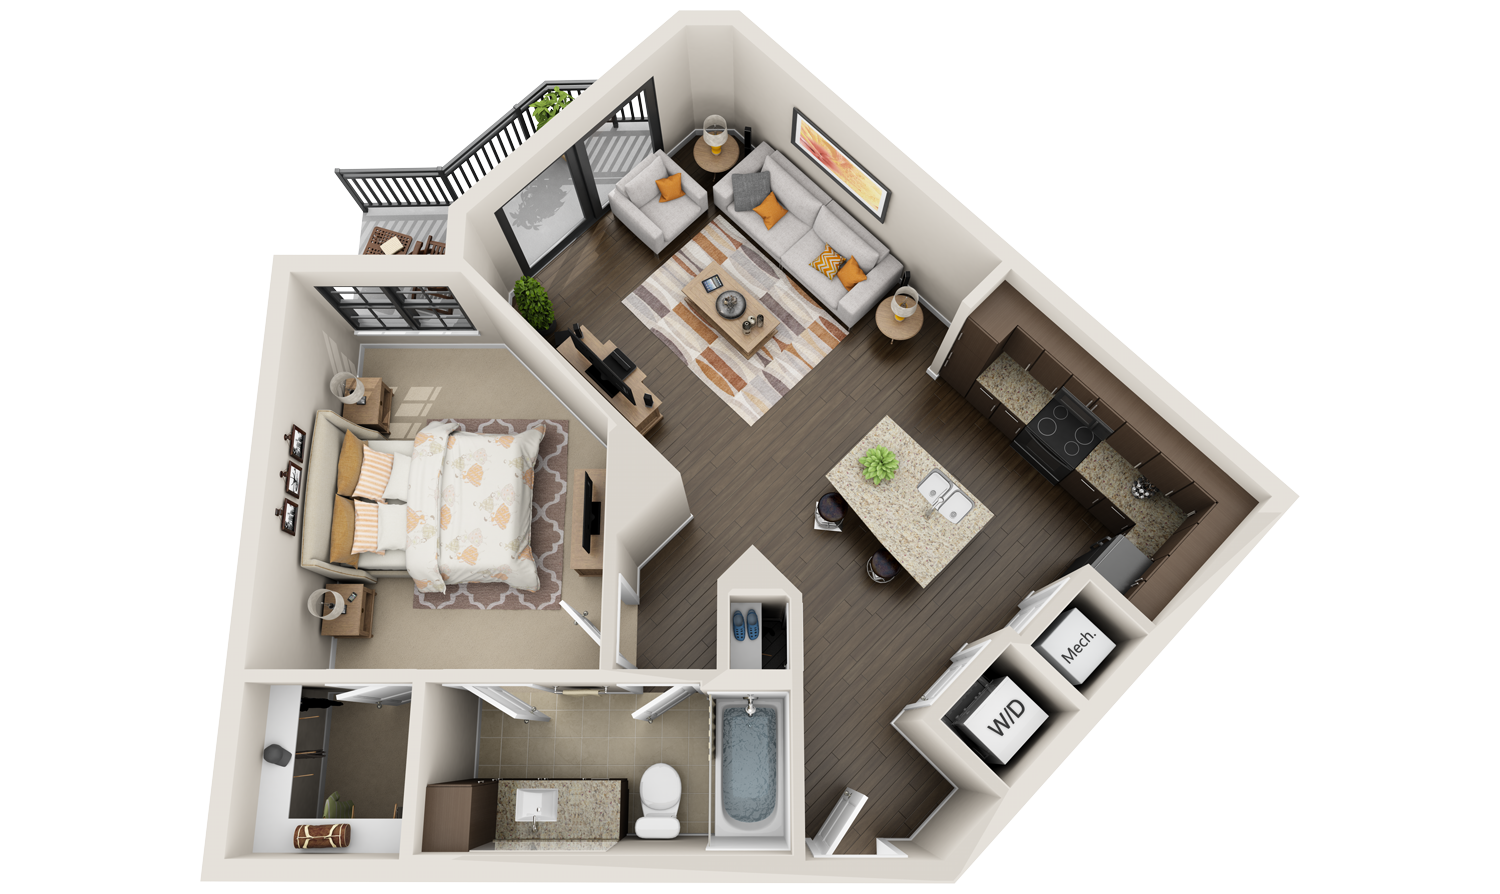 3d floor plans for apartments that look real for Apartment floor plan